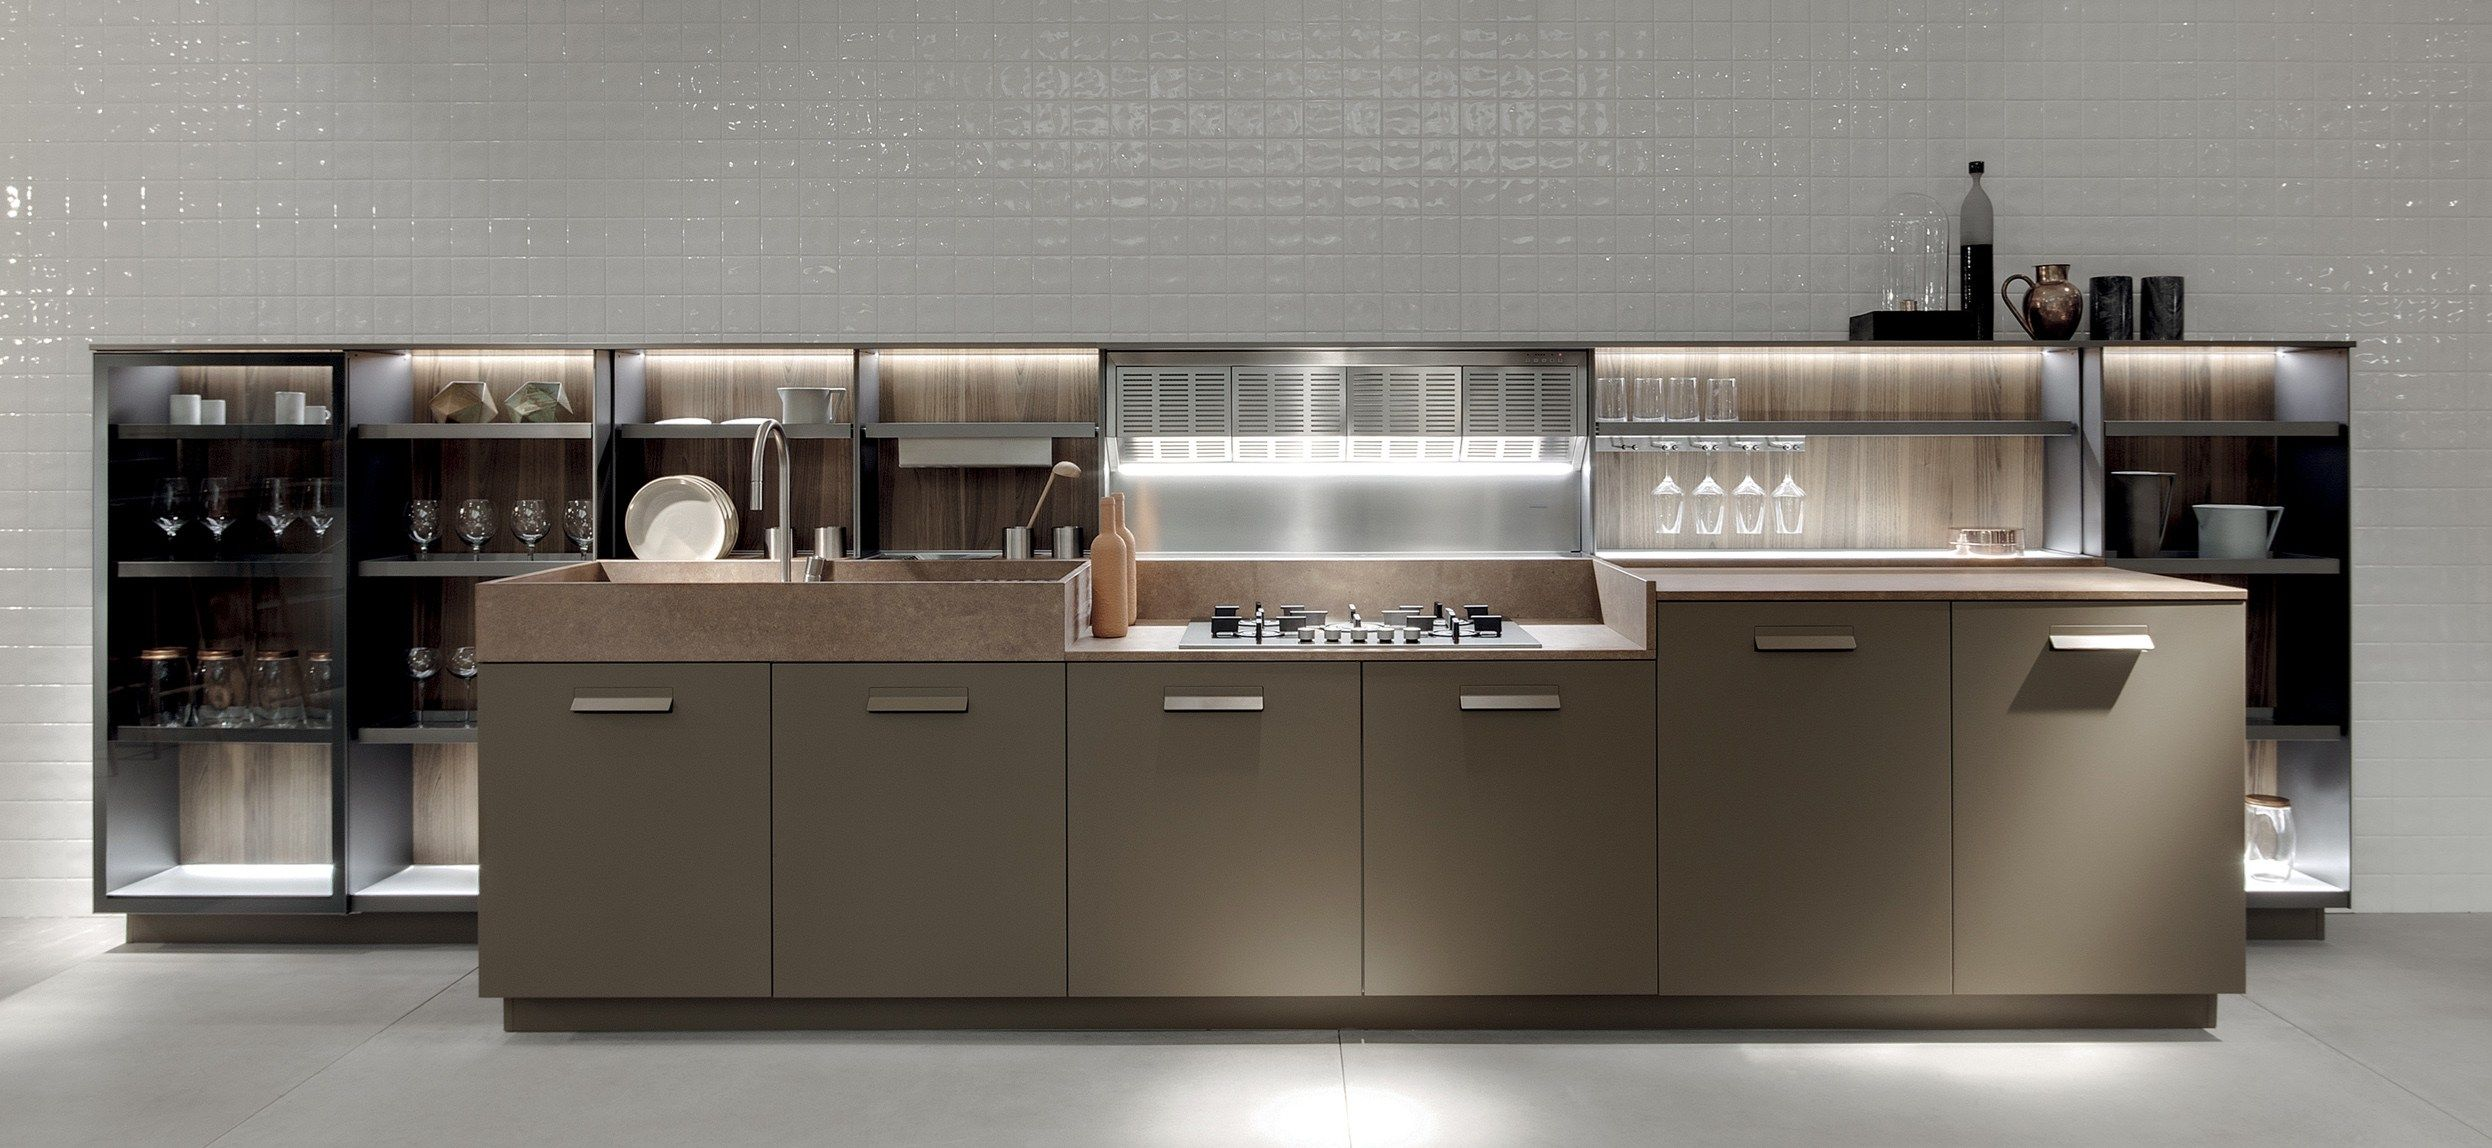 Lacquered Linear Kitchen Soul By Ernestomeda Design Giuseppe Bavuso Kitchen Home Goods Decor Kitchen Design